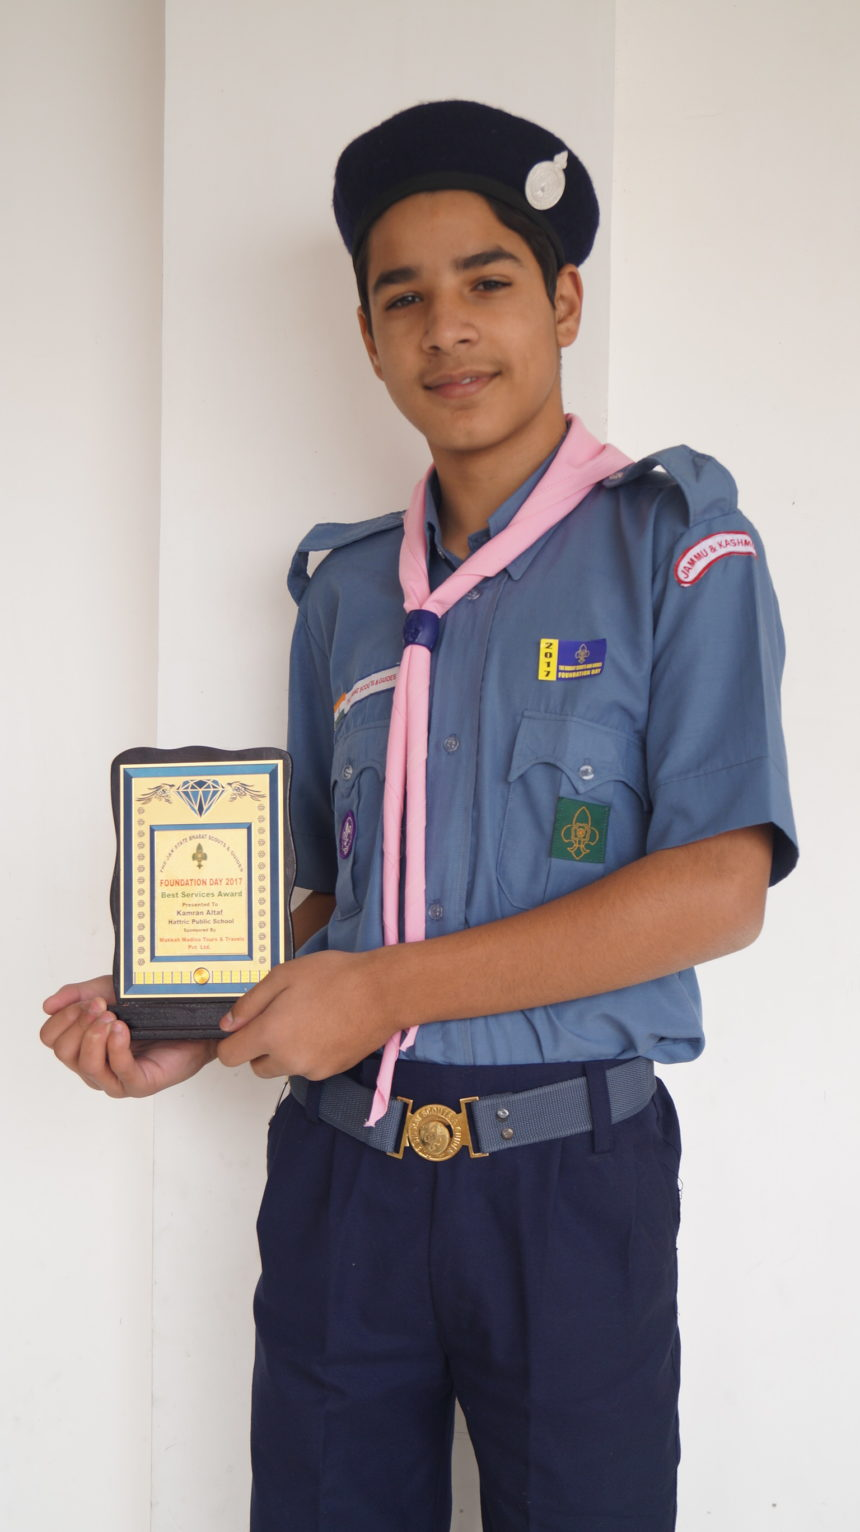 Kamran Altaf of Grade 8 felicitated by J&k Bharat Guides and Scouts